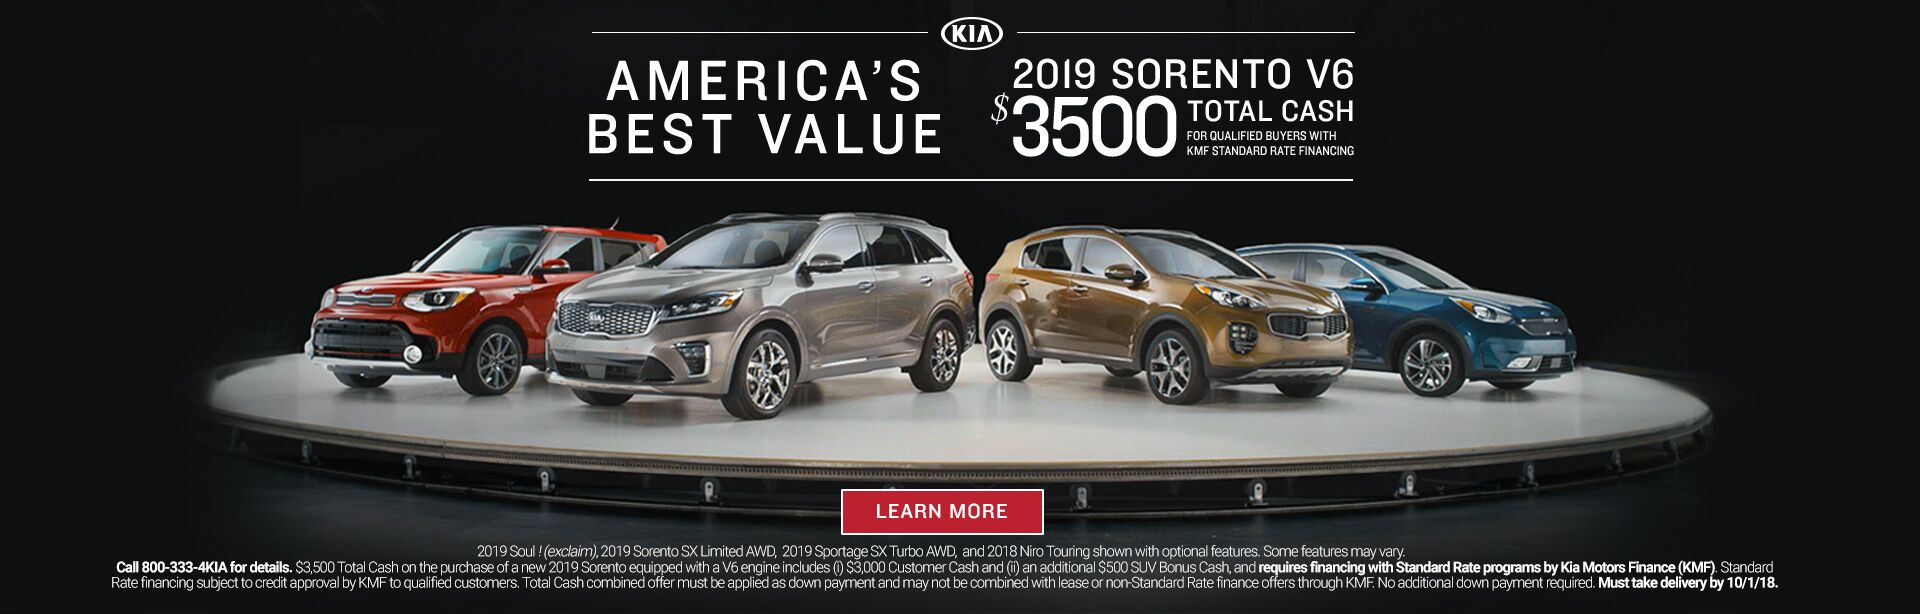 America's Best Value 2019 Sorento Boucher Kia of Milwaukee